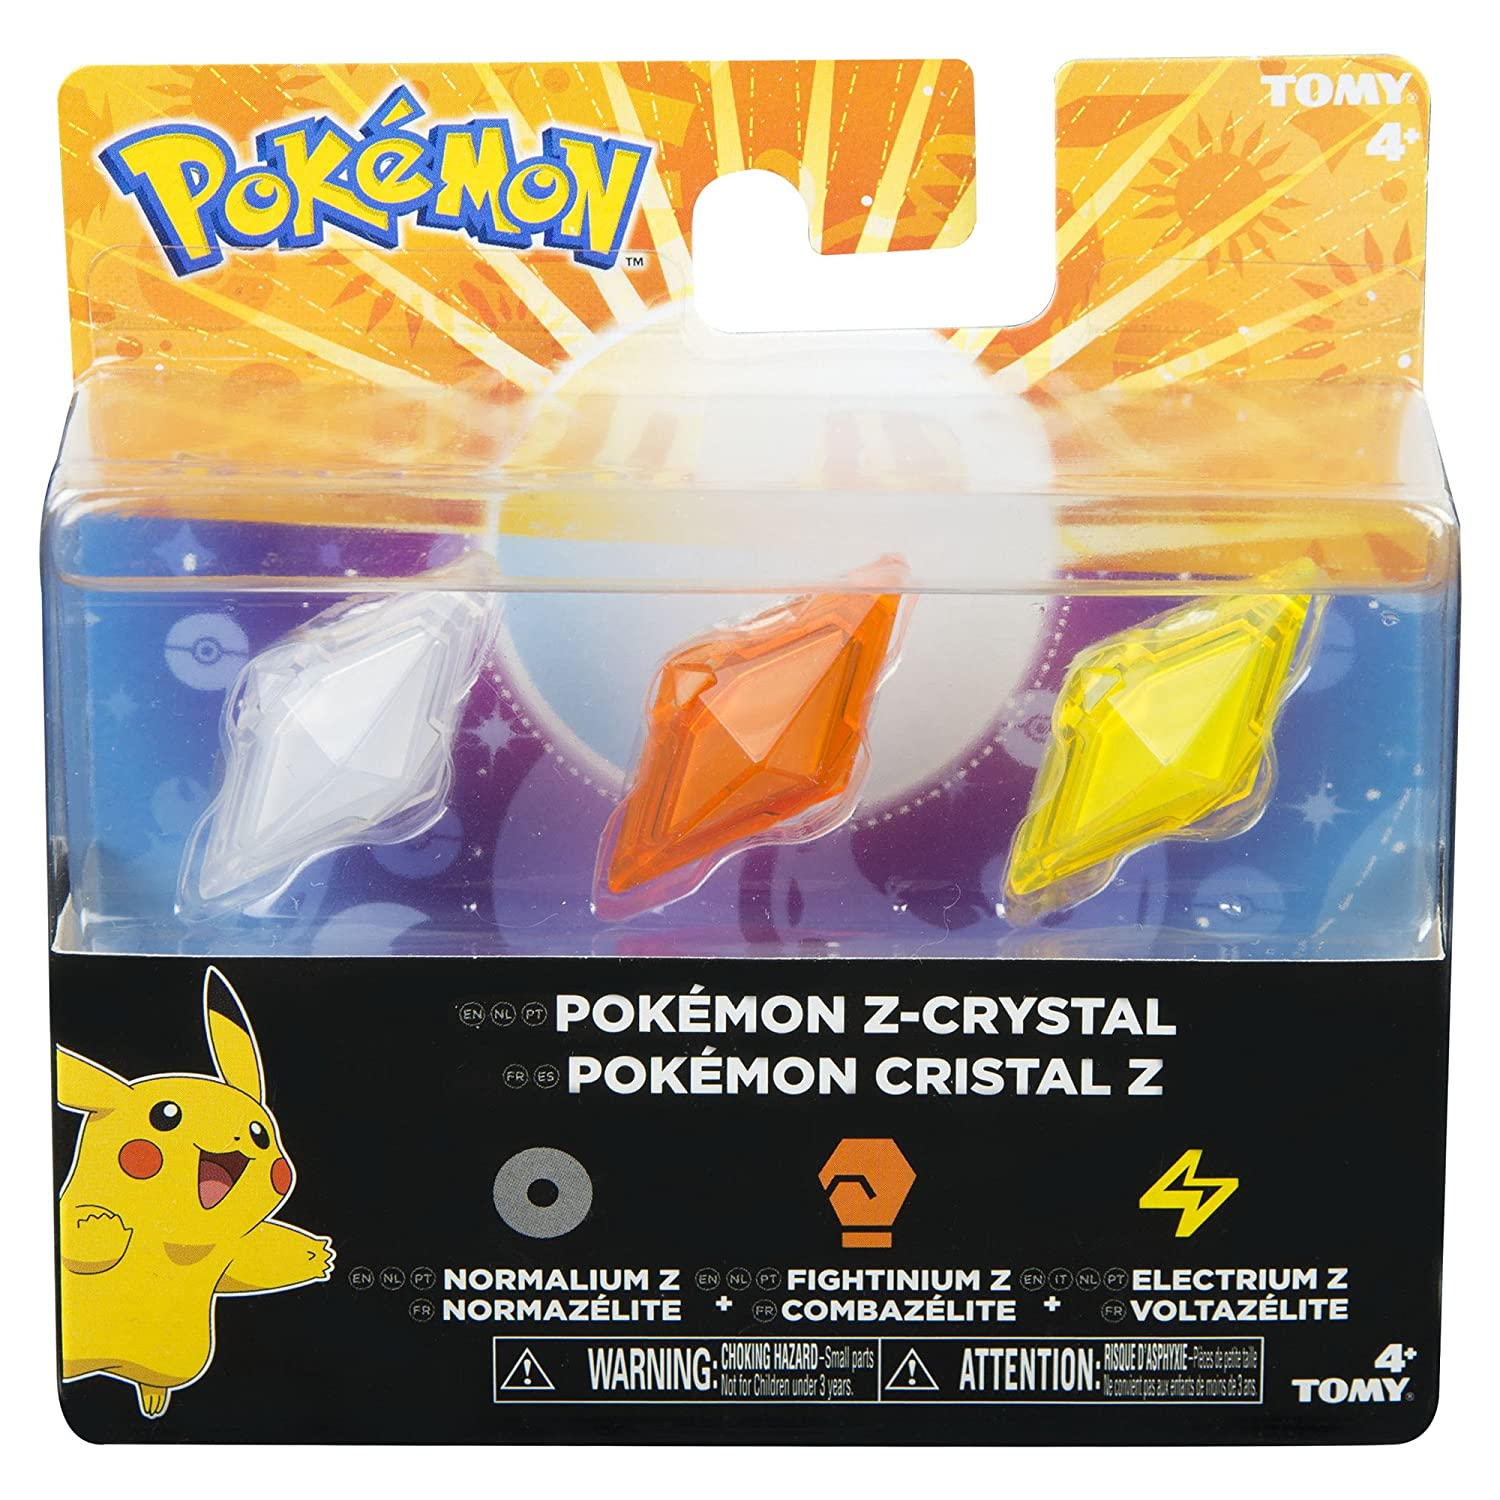 Pokémon–Pack of 3Crystals Z-Ring, Normal/Fighting/Electricity (Bizak 30699210)